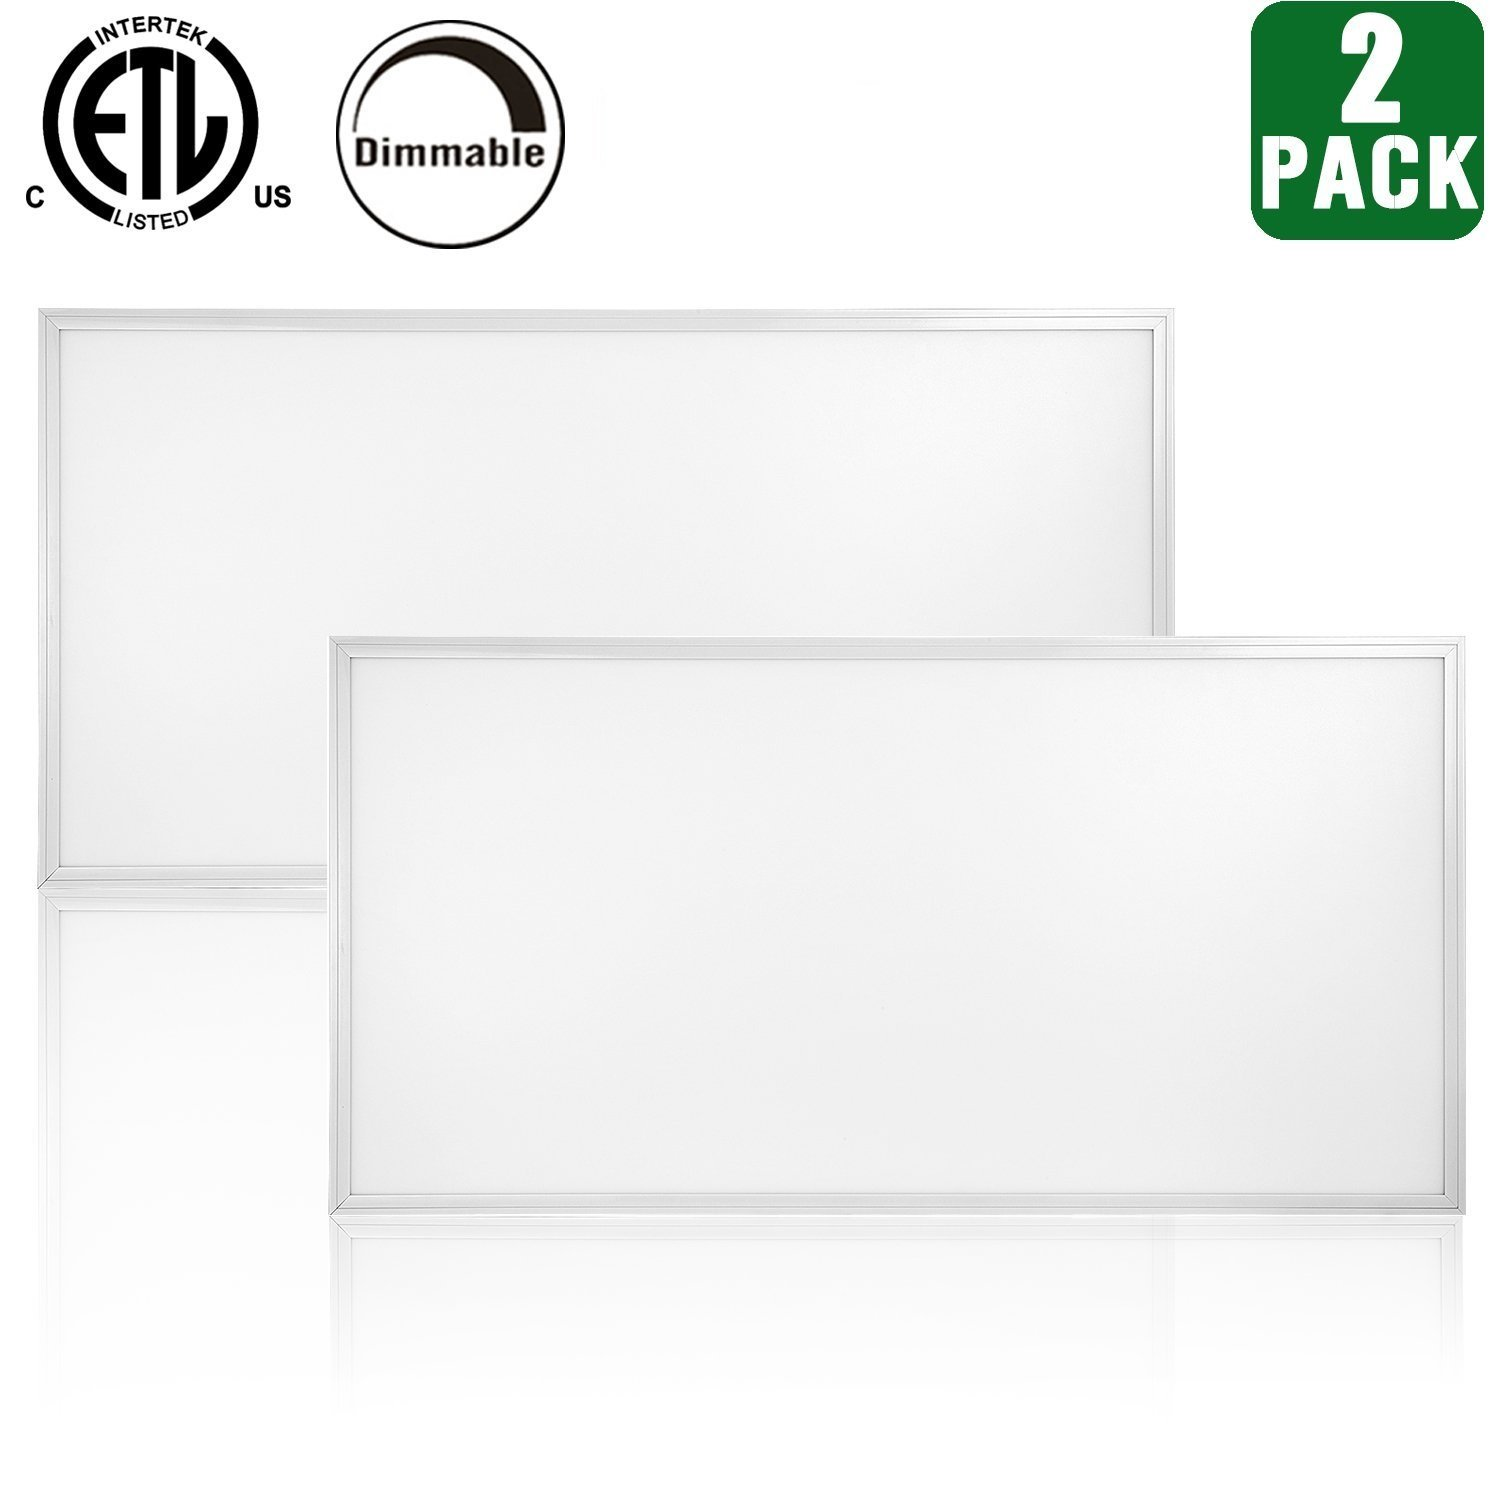 Hykolity 2ft x 4ft 50w LED Troffer Flat Panel Light Ultra Thin Commercial Drop Ceiling Edge-Lit Dimmable Lamp Fixture 6250lm DLC Premium 4.2 Qualified-Pack of 2